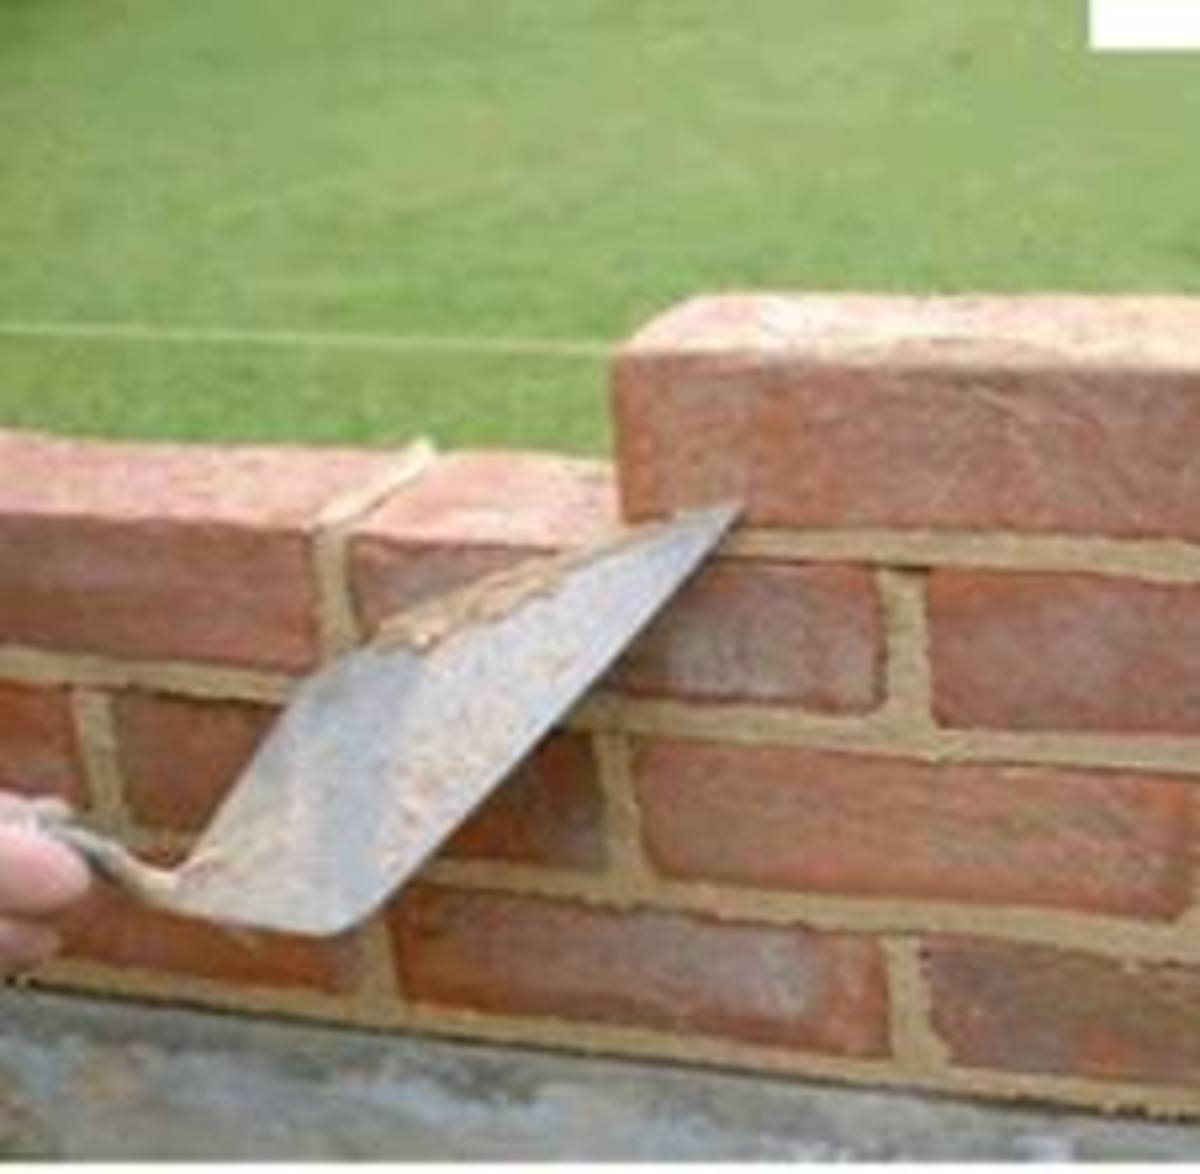 A brickies trowel showing hot to cut the mortar  joint when laying bricks. The bricklayers use this trowel to spread the mortar tap the brick to the right position and many other things.